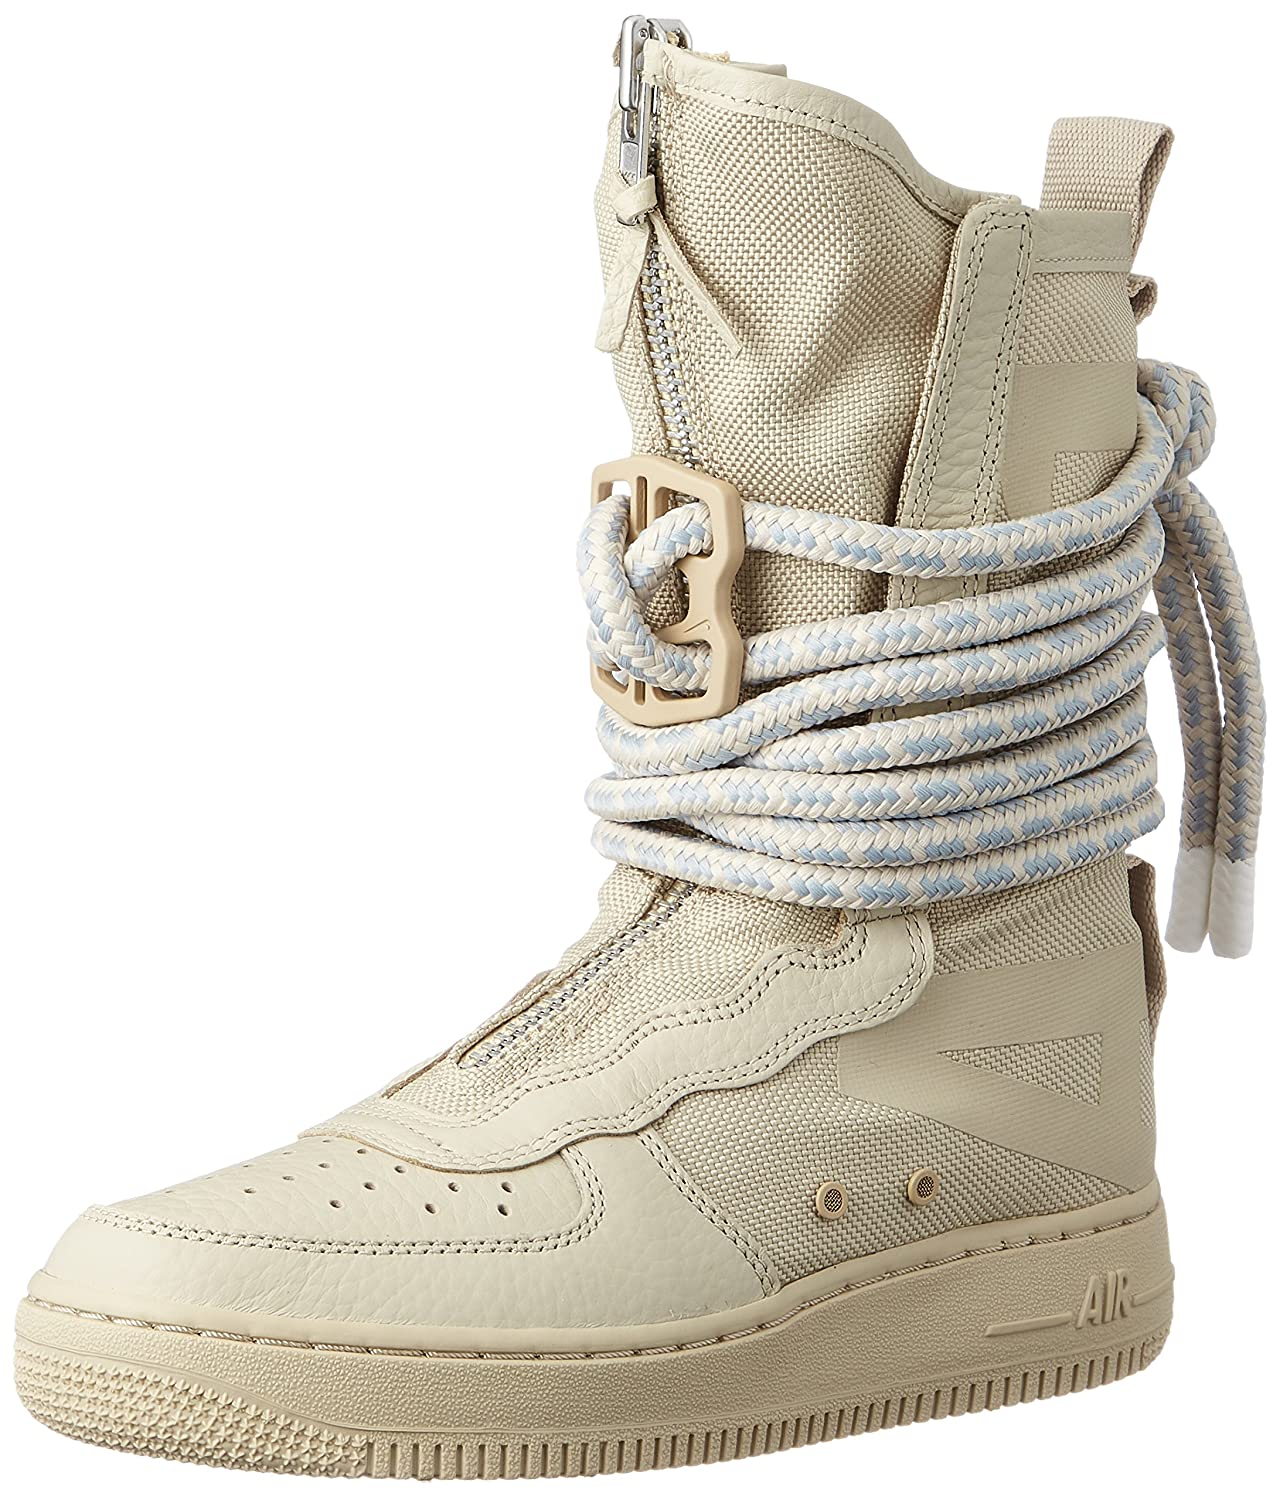 reputable site 8eae4 07928 Nike SF Air Force High Top Womens Boots Rattan/Rattan/White aa3965-200